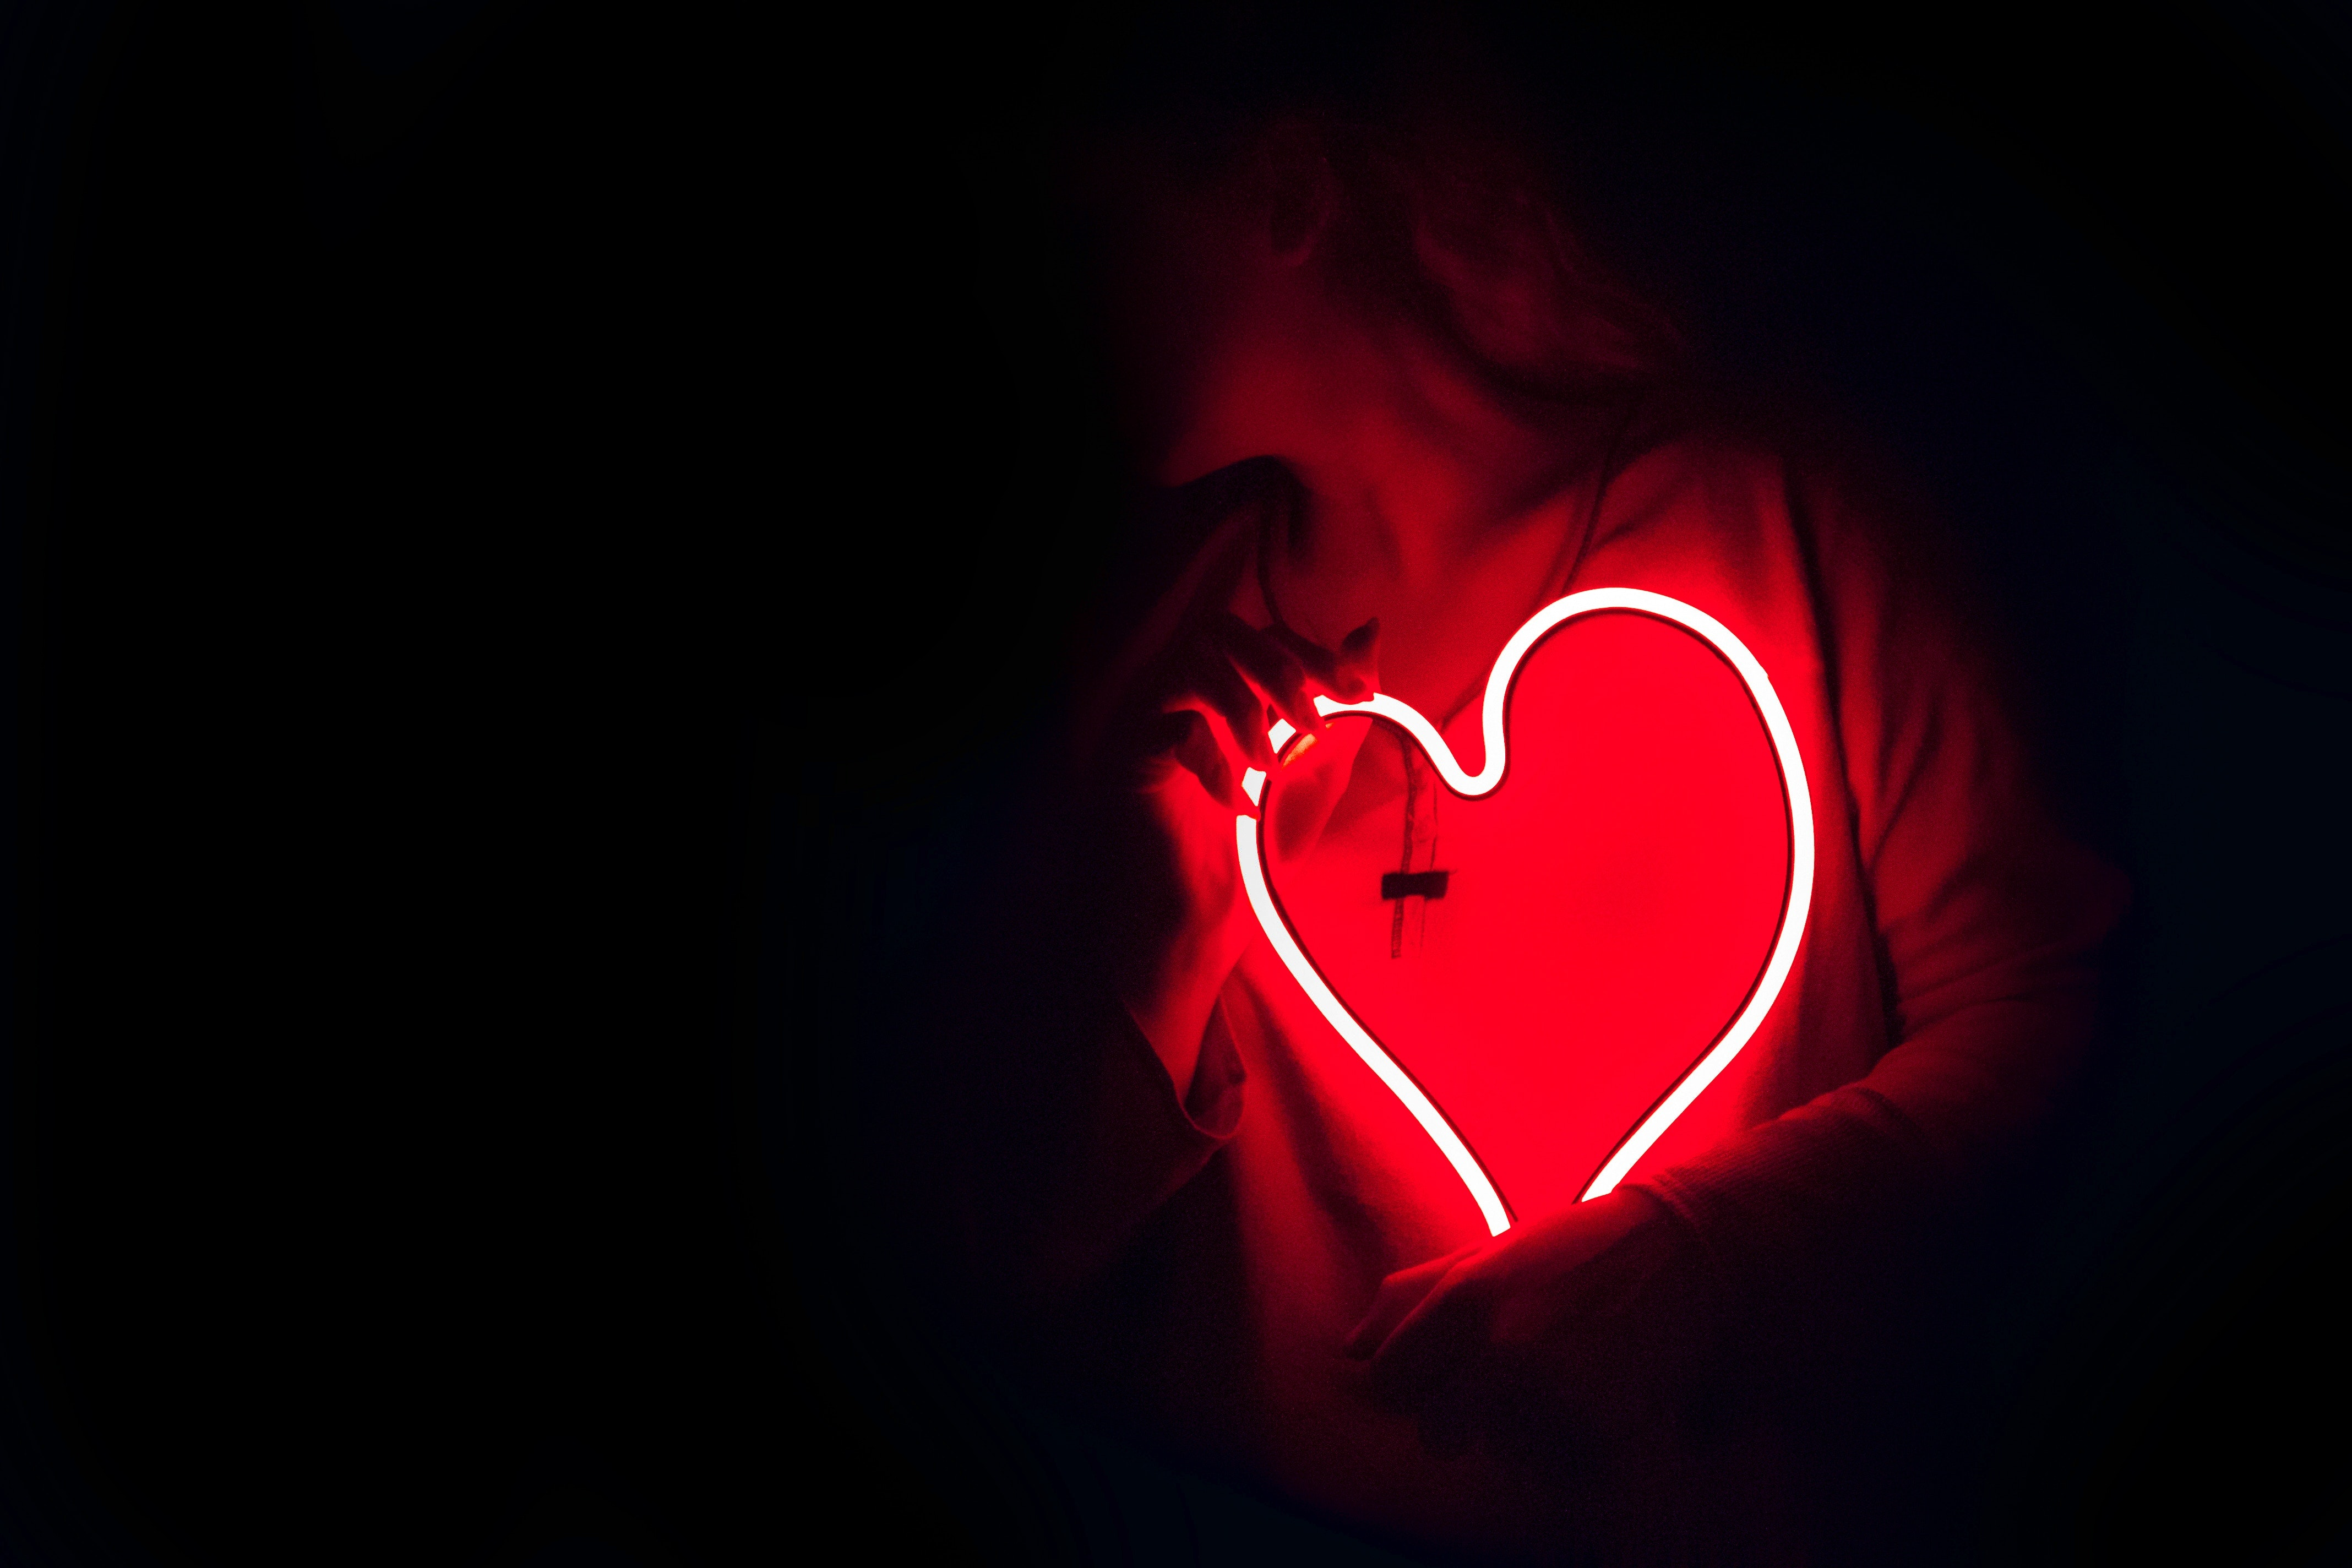 Heart Shaped Red Neon Signage Free Stock Photo